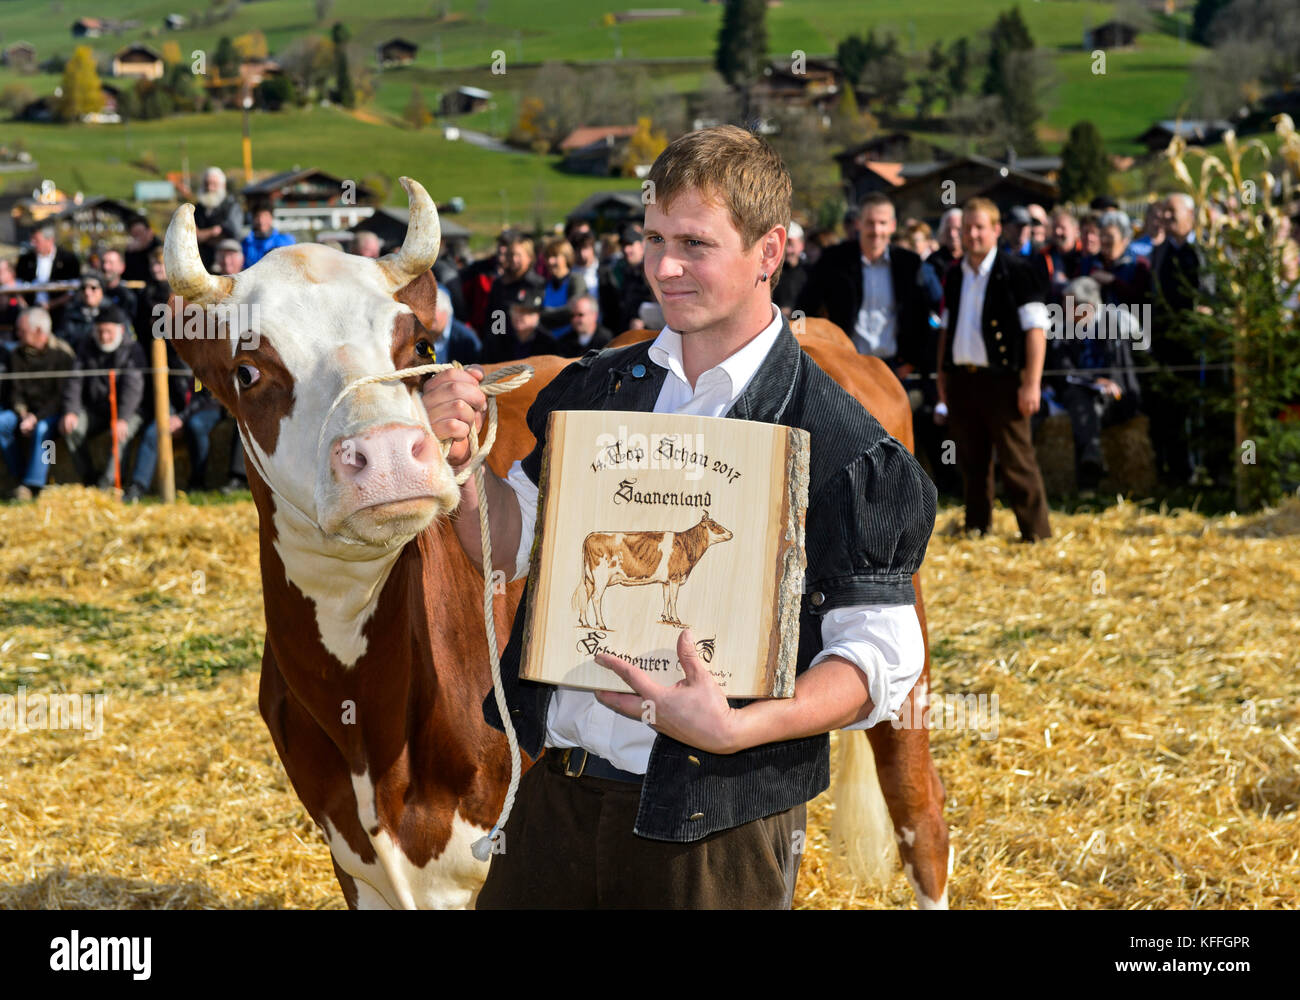 Gstaad, Switzerland. 28th Oct, 2017. The owner of the Swiss Fleckvieh cow Falk proudly shows an award received the - Stock Image